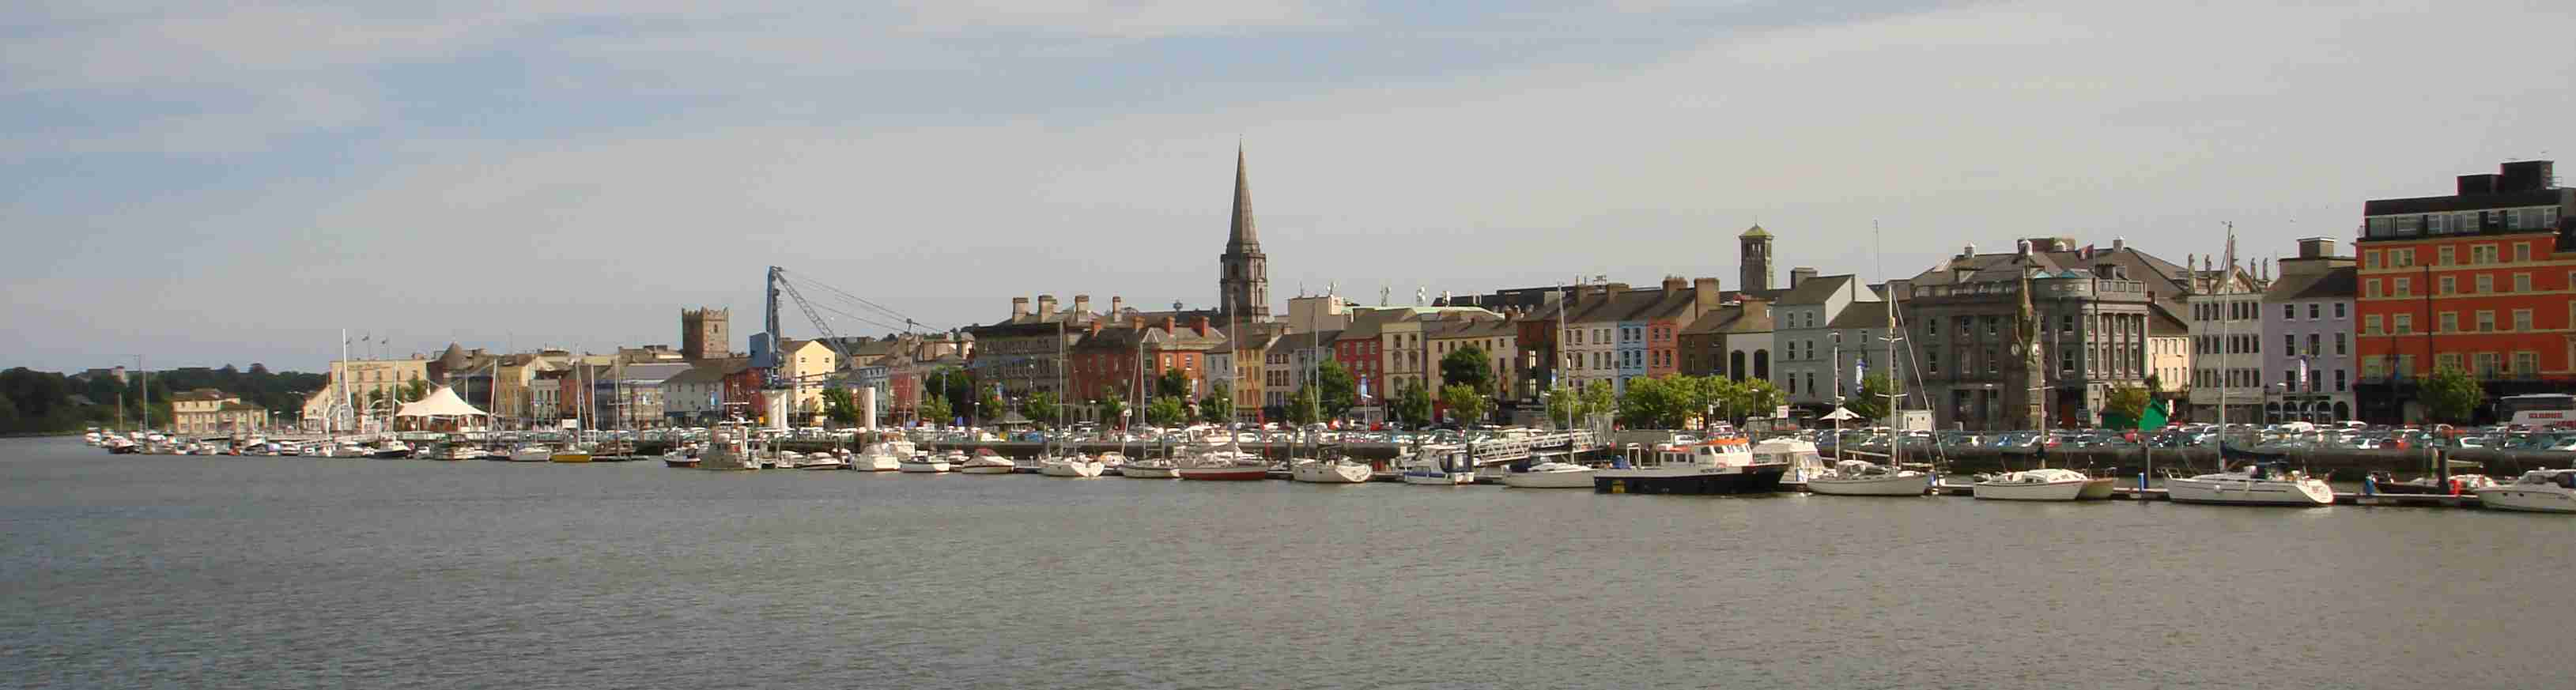 Views from across the River Suir showing the Quays of Waterford City, Ireland